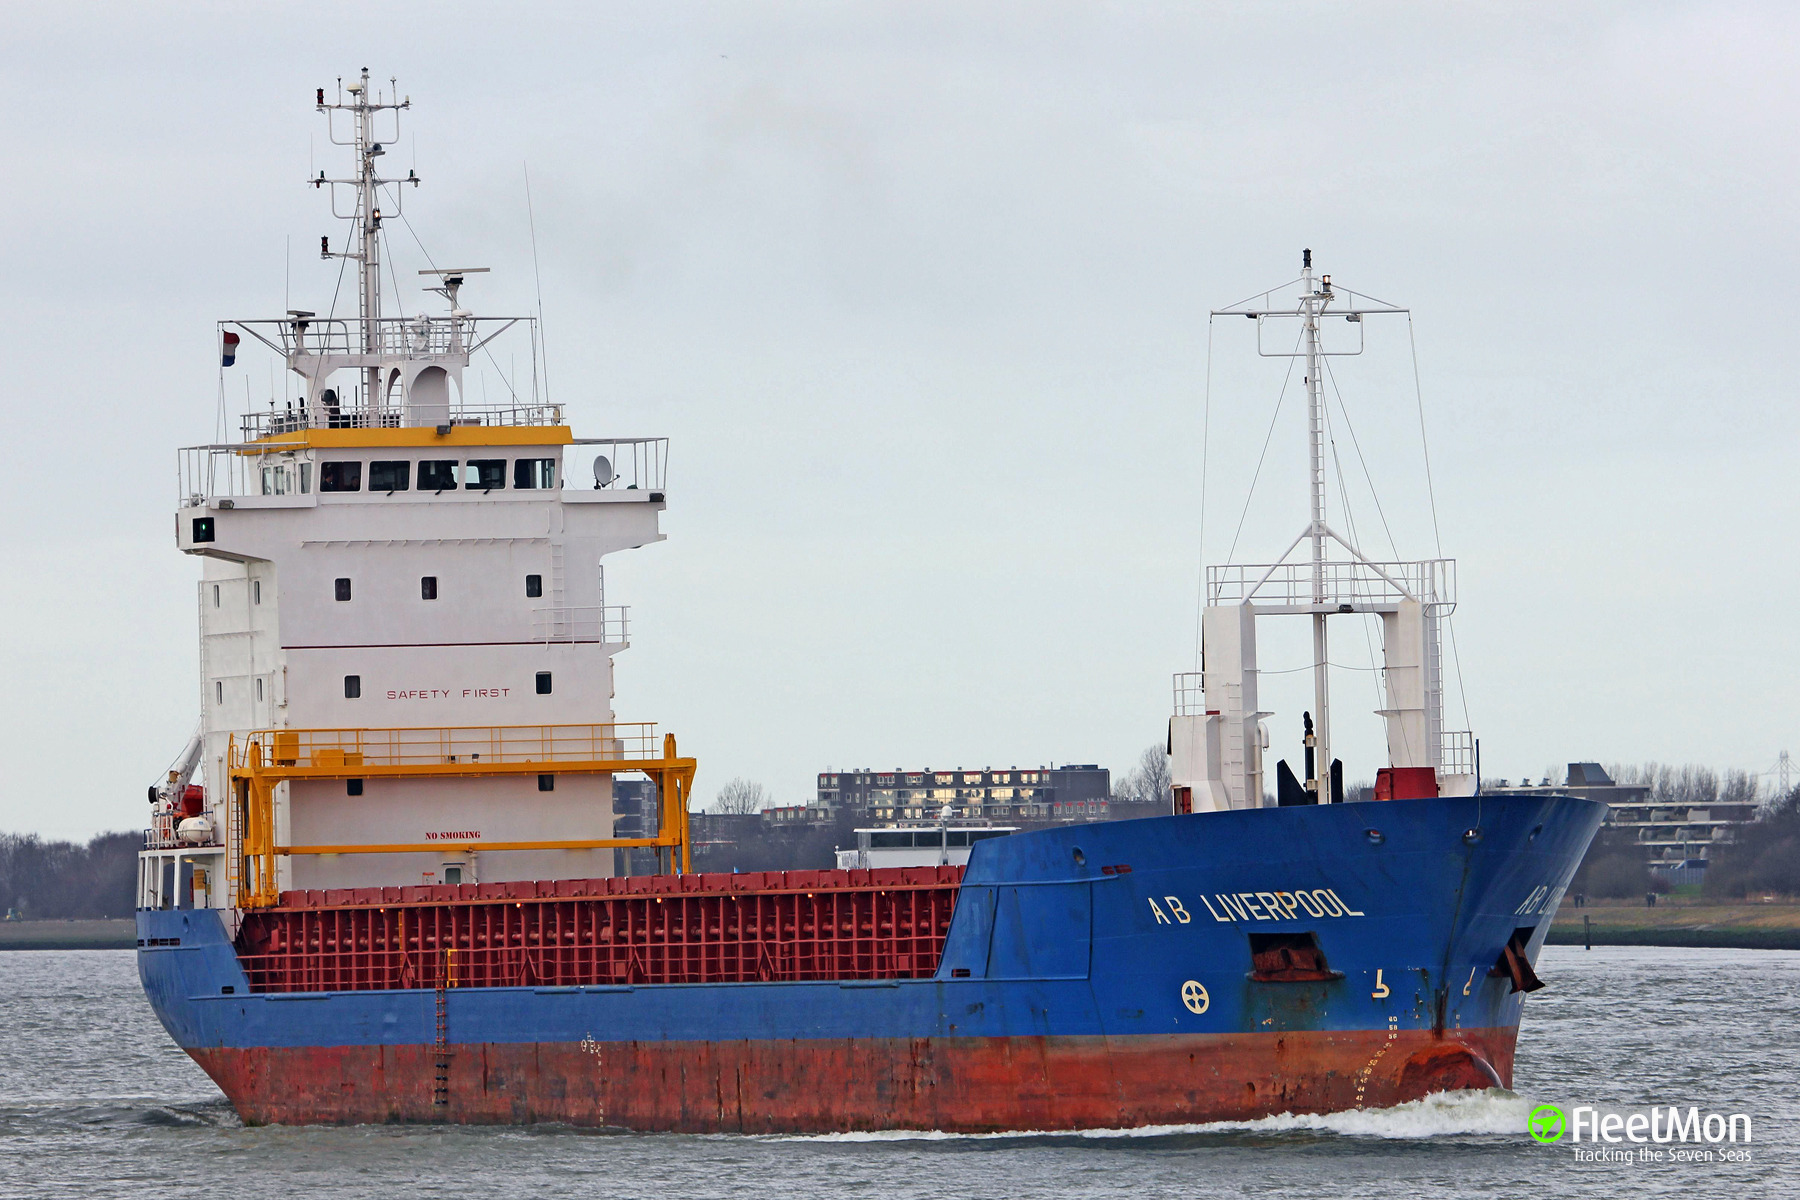 General cargo vessel Kertu under tow to Oxelosund, situation under control